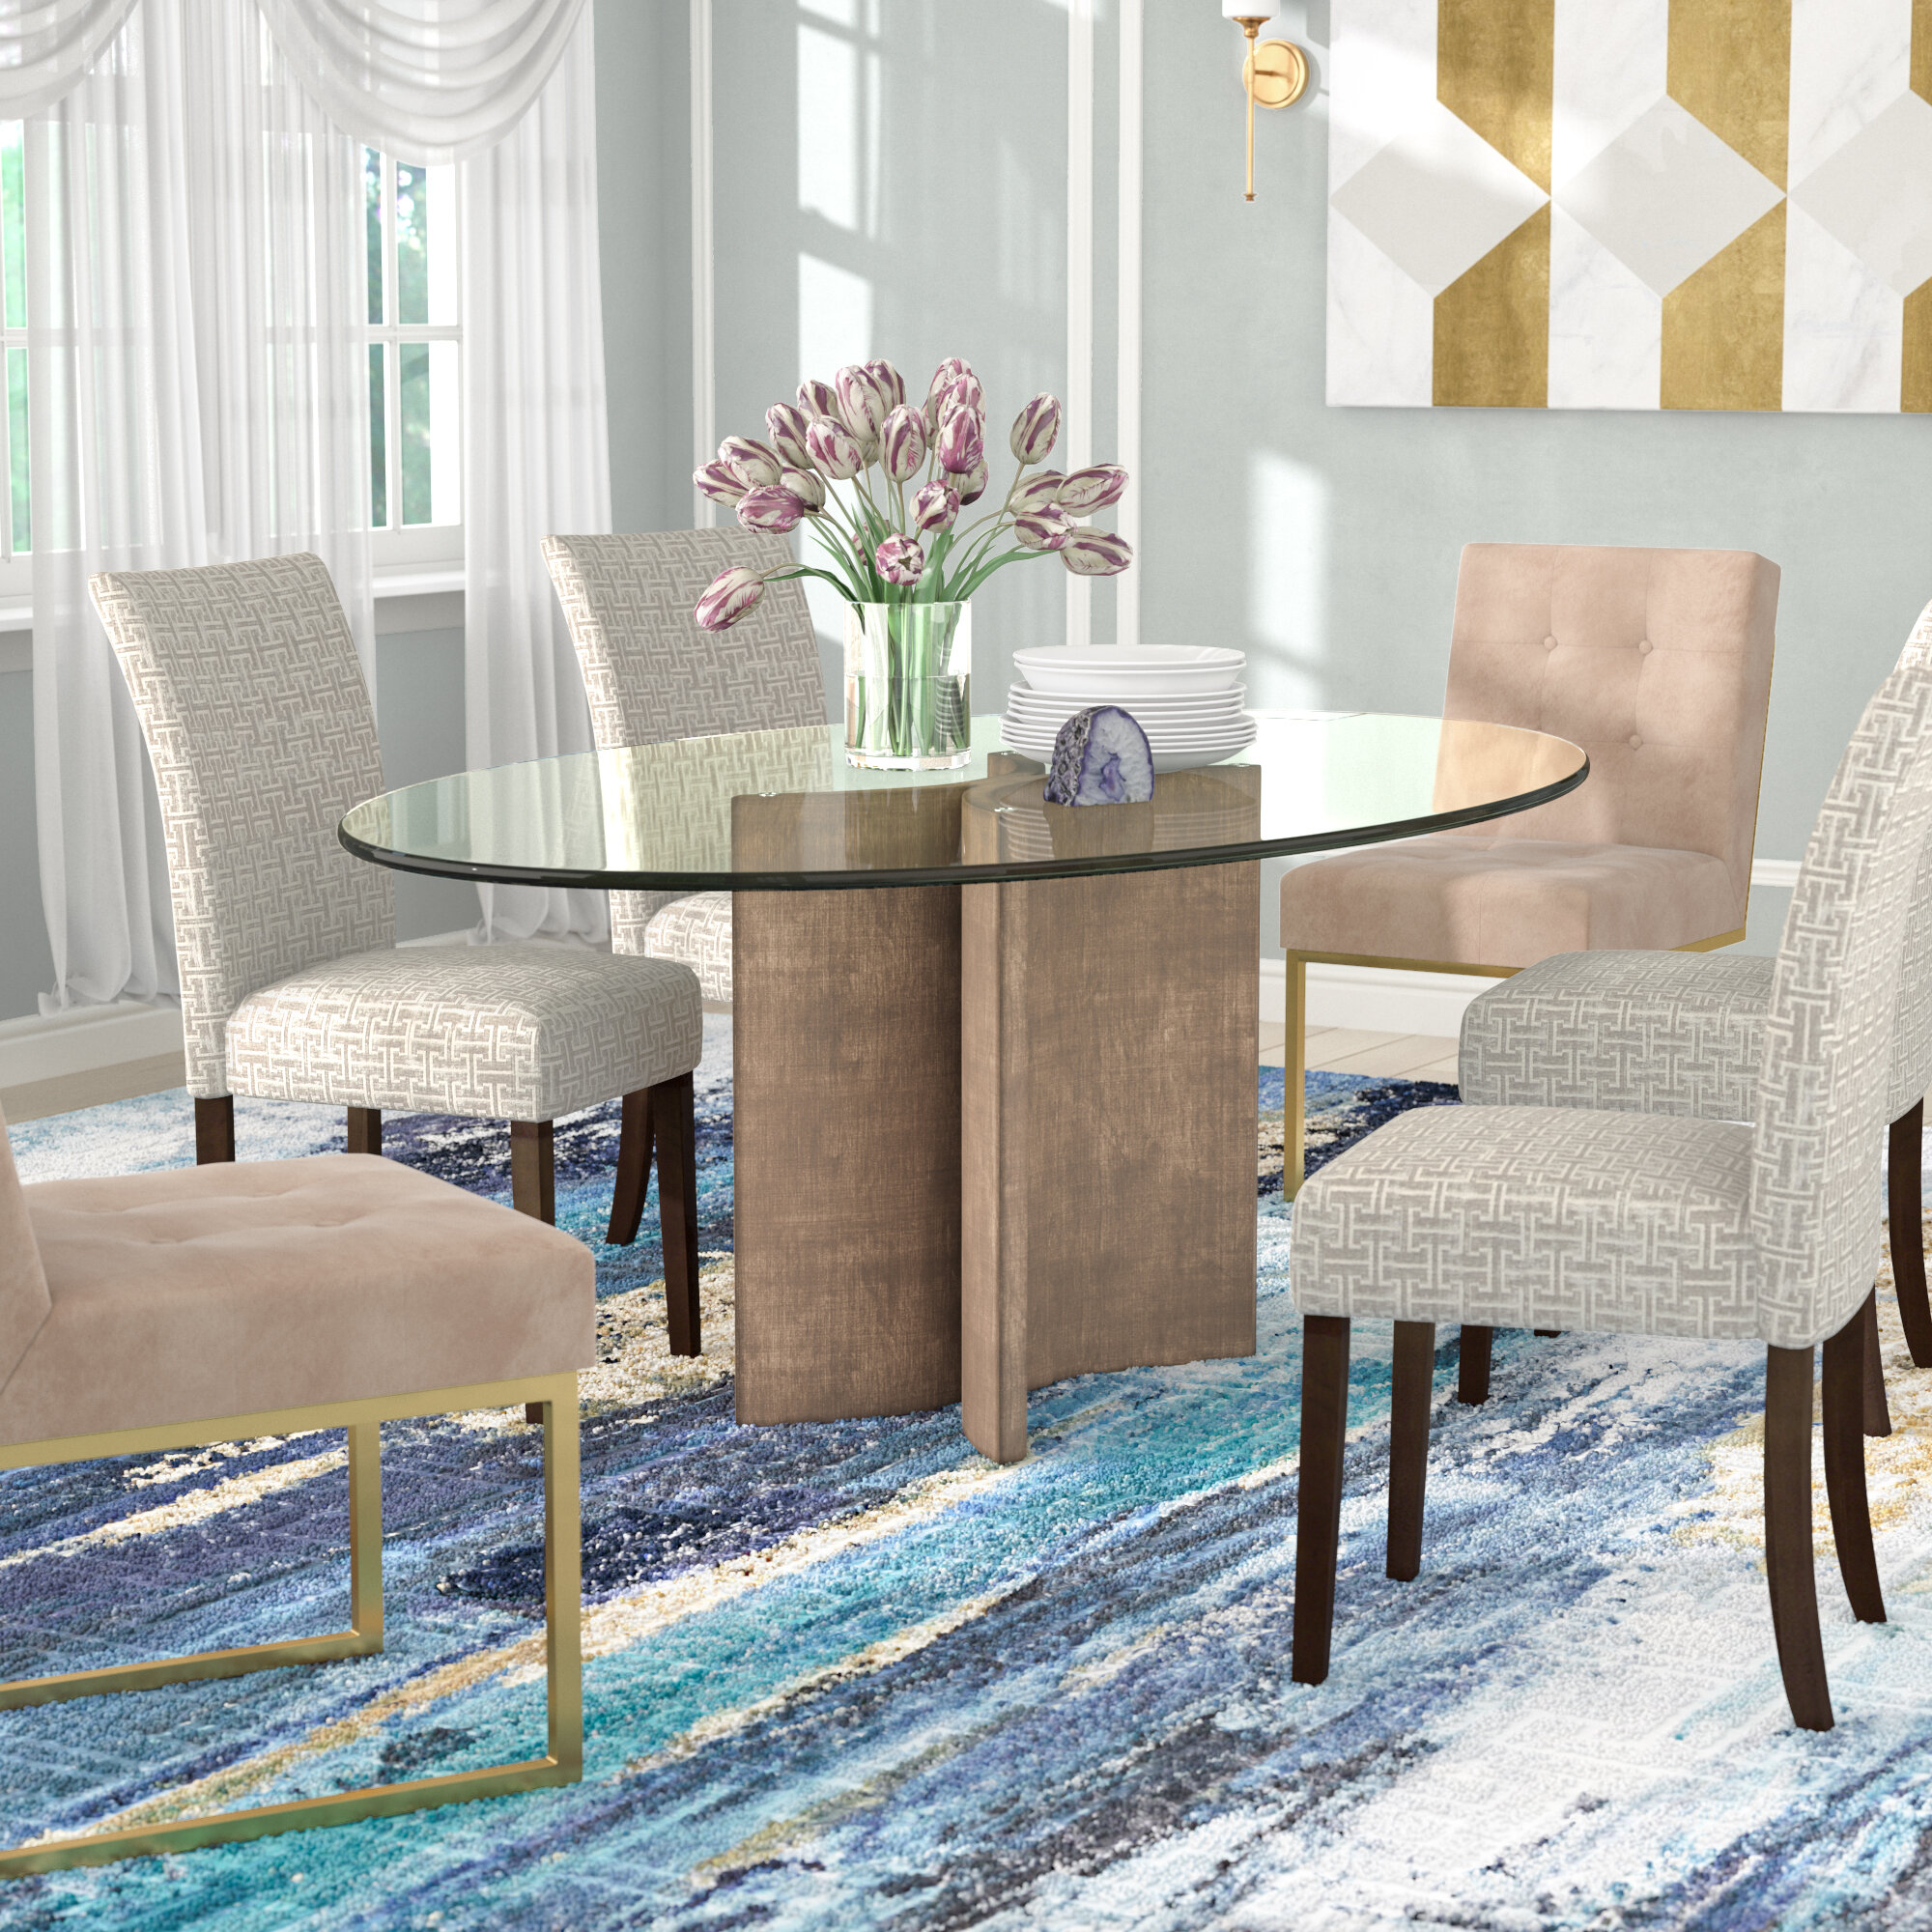 Oval Kitchen & Dining Tables You'll Love in 9   Wayfair